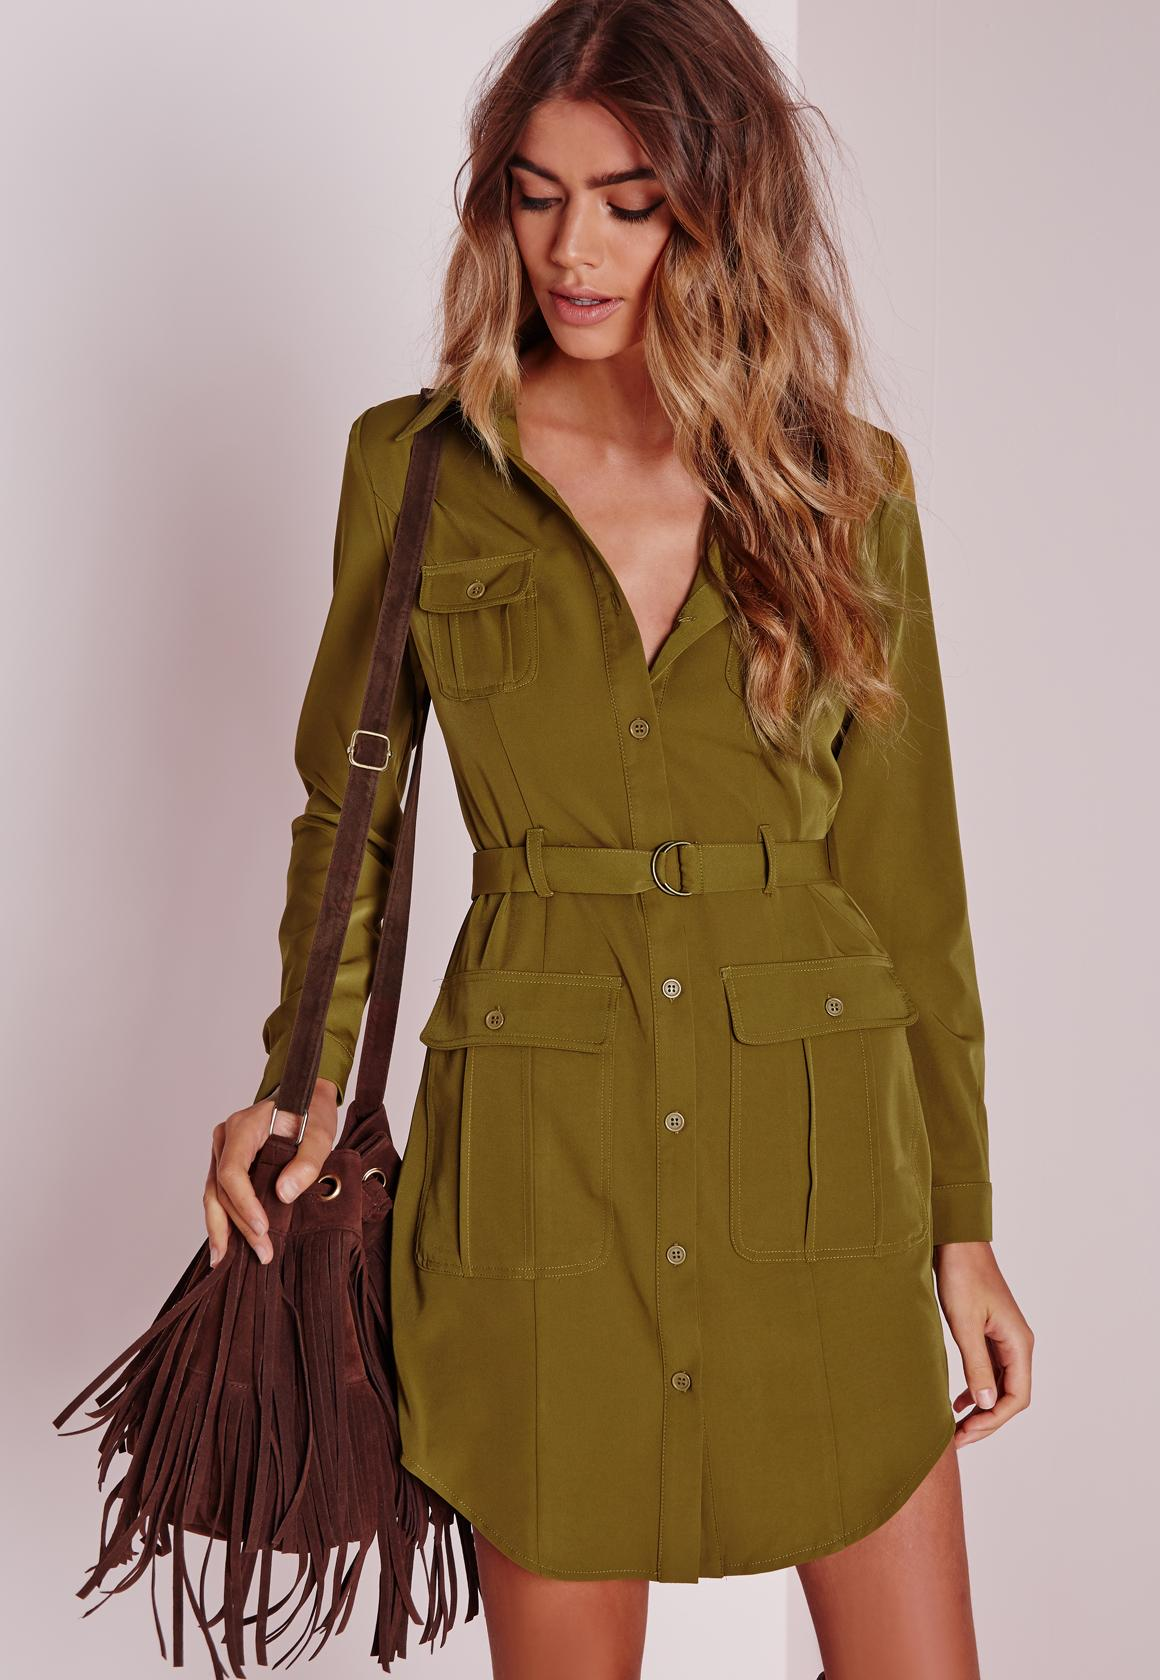 Petite Belted Shirt Dress Khaki | Missguided Ireland